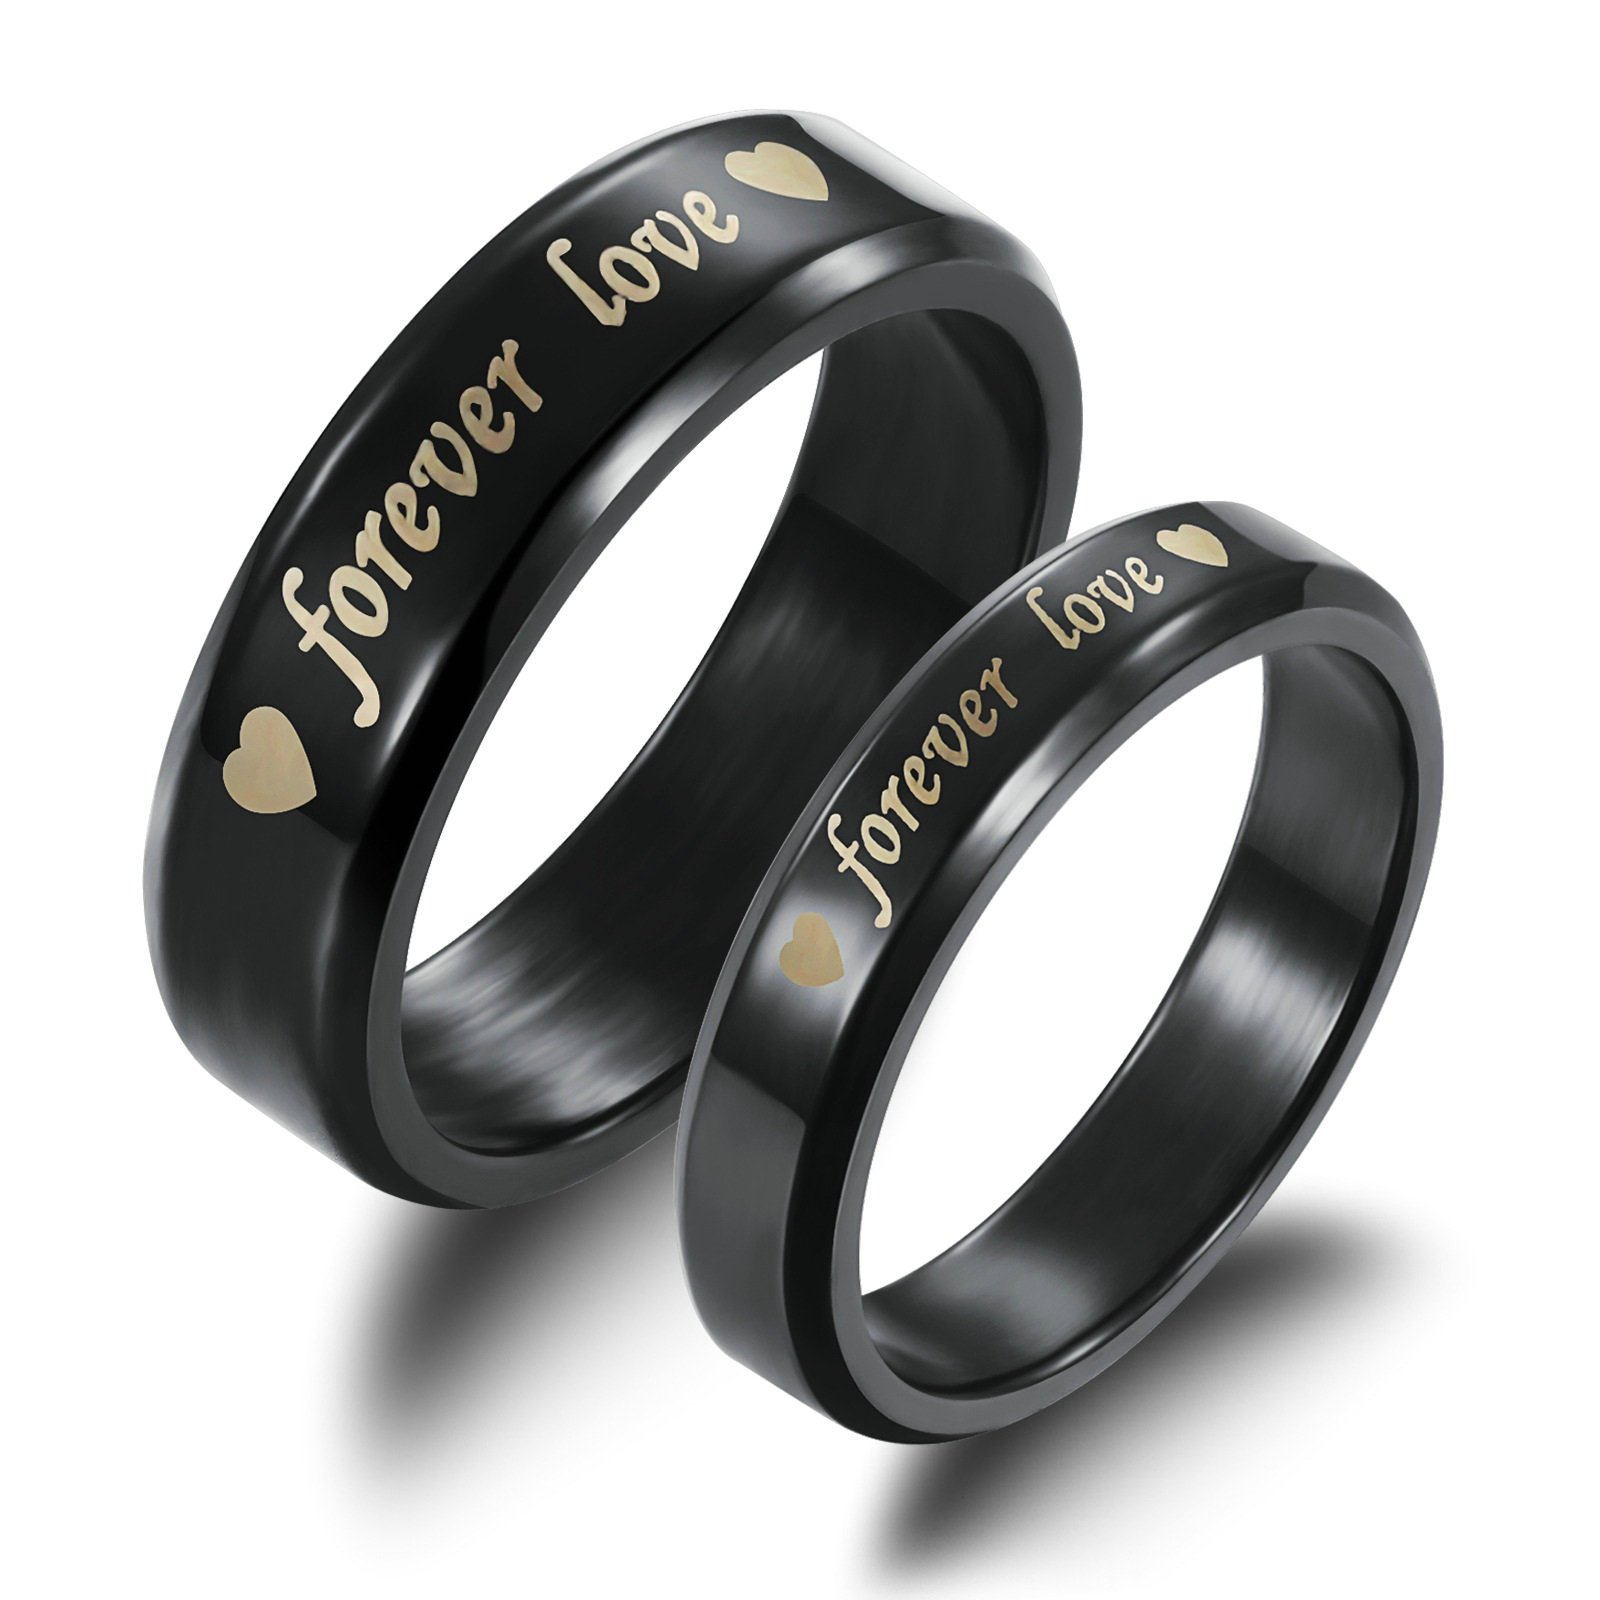 Aooaz Wedding Rings For Him And Her Black Heart Forever Love Rings With Your Laser Engraving Free Womens 6 & Men 9 Novelty Jewelry Gift